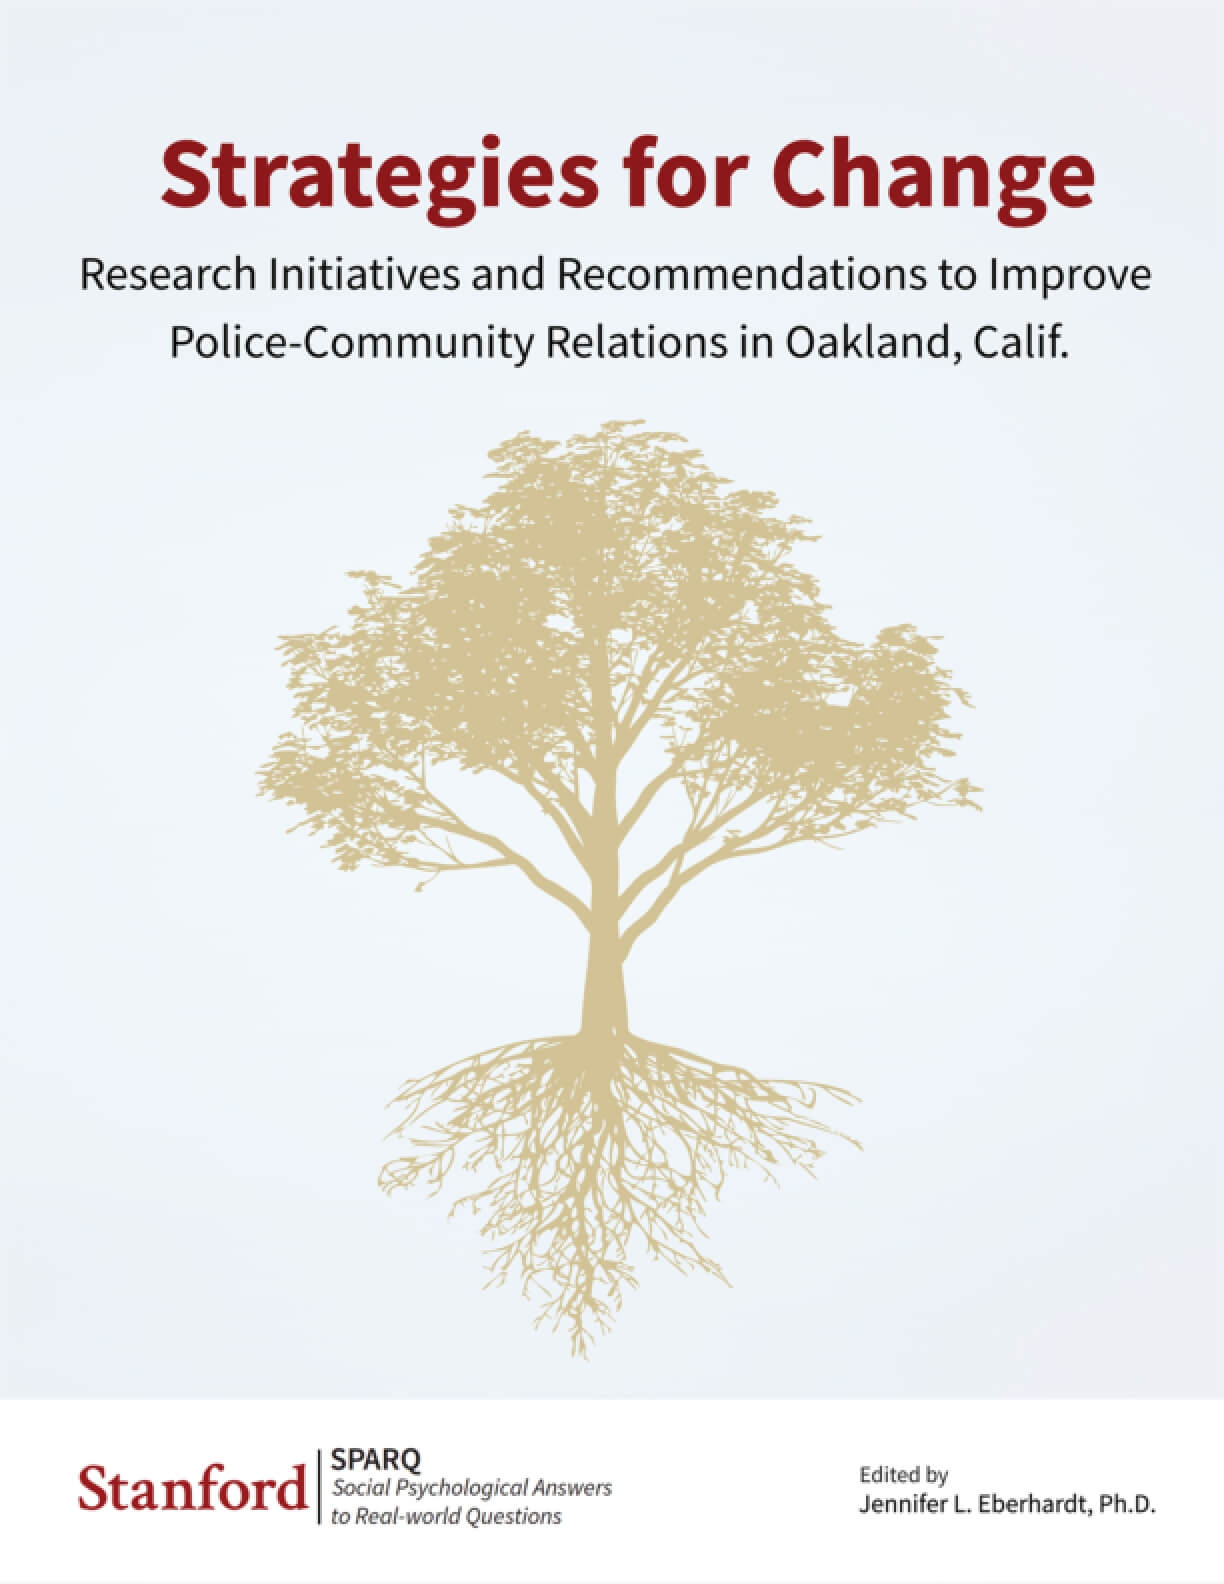 Strategies for Change: Research Initiatives and Recommendations to Improve Police-Community Relations in Oakland, CA